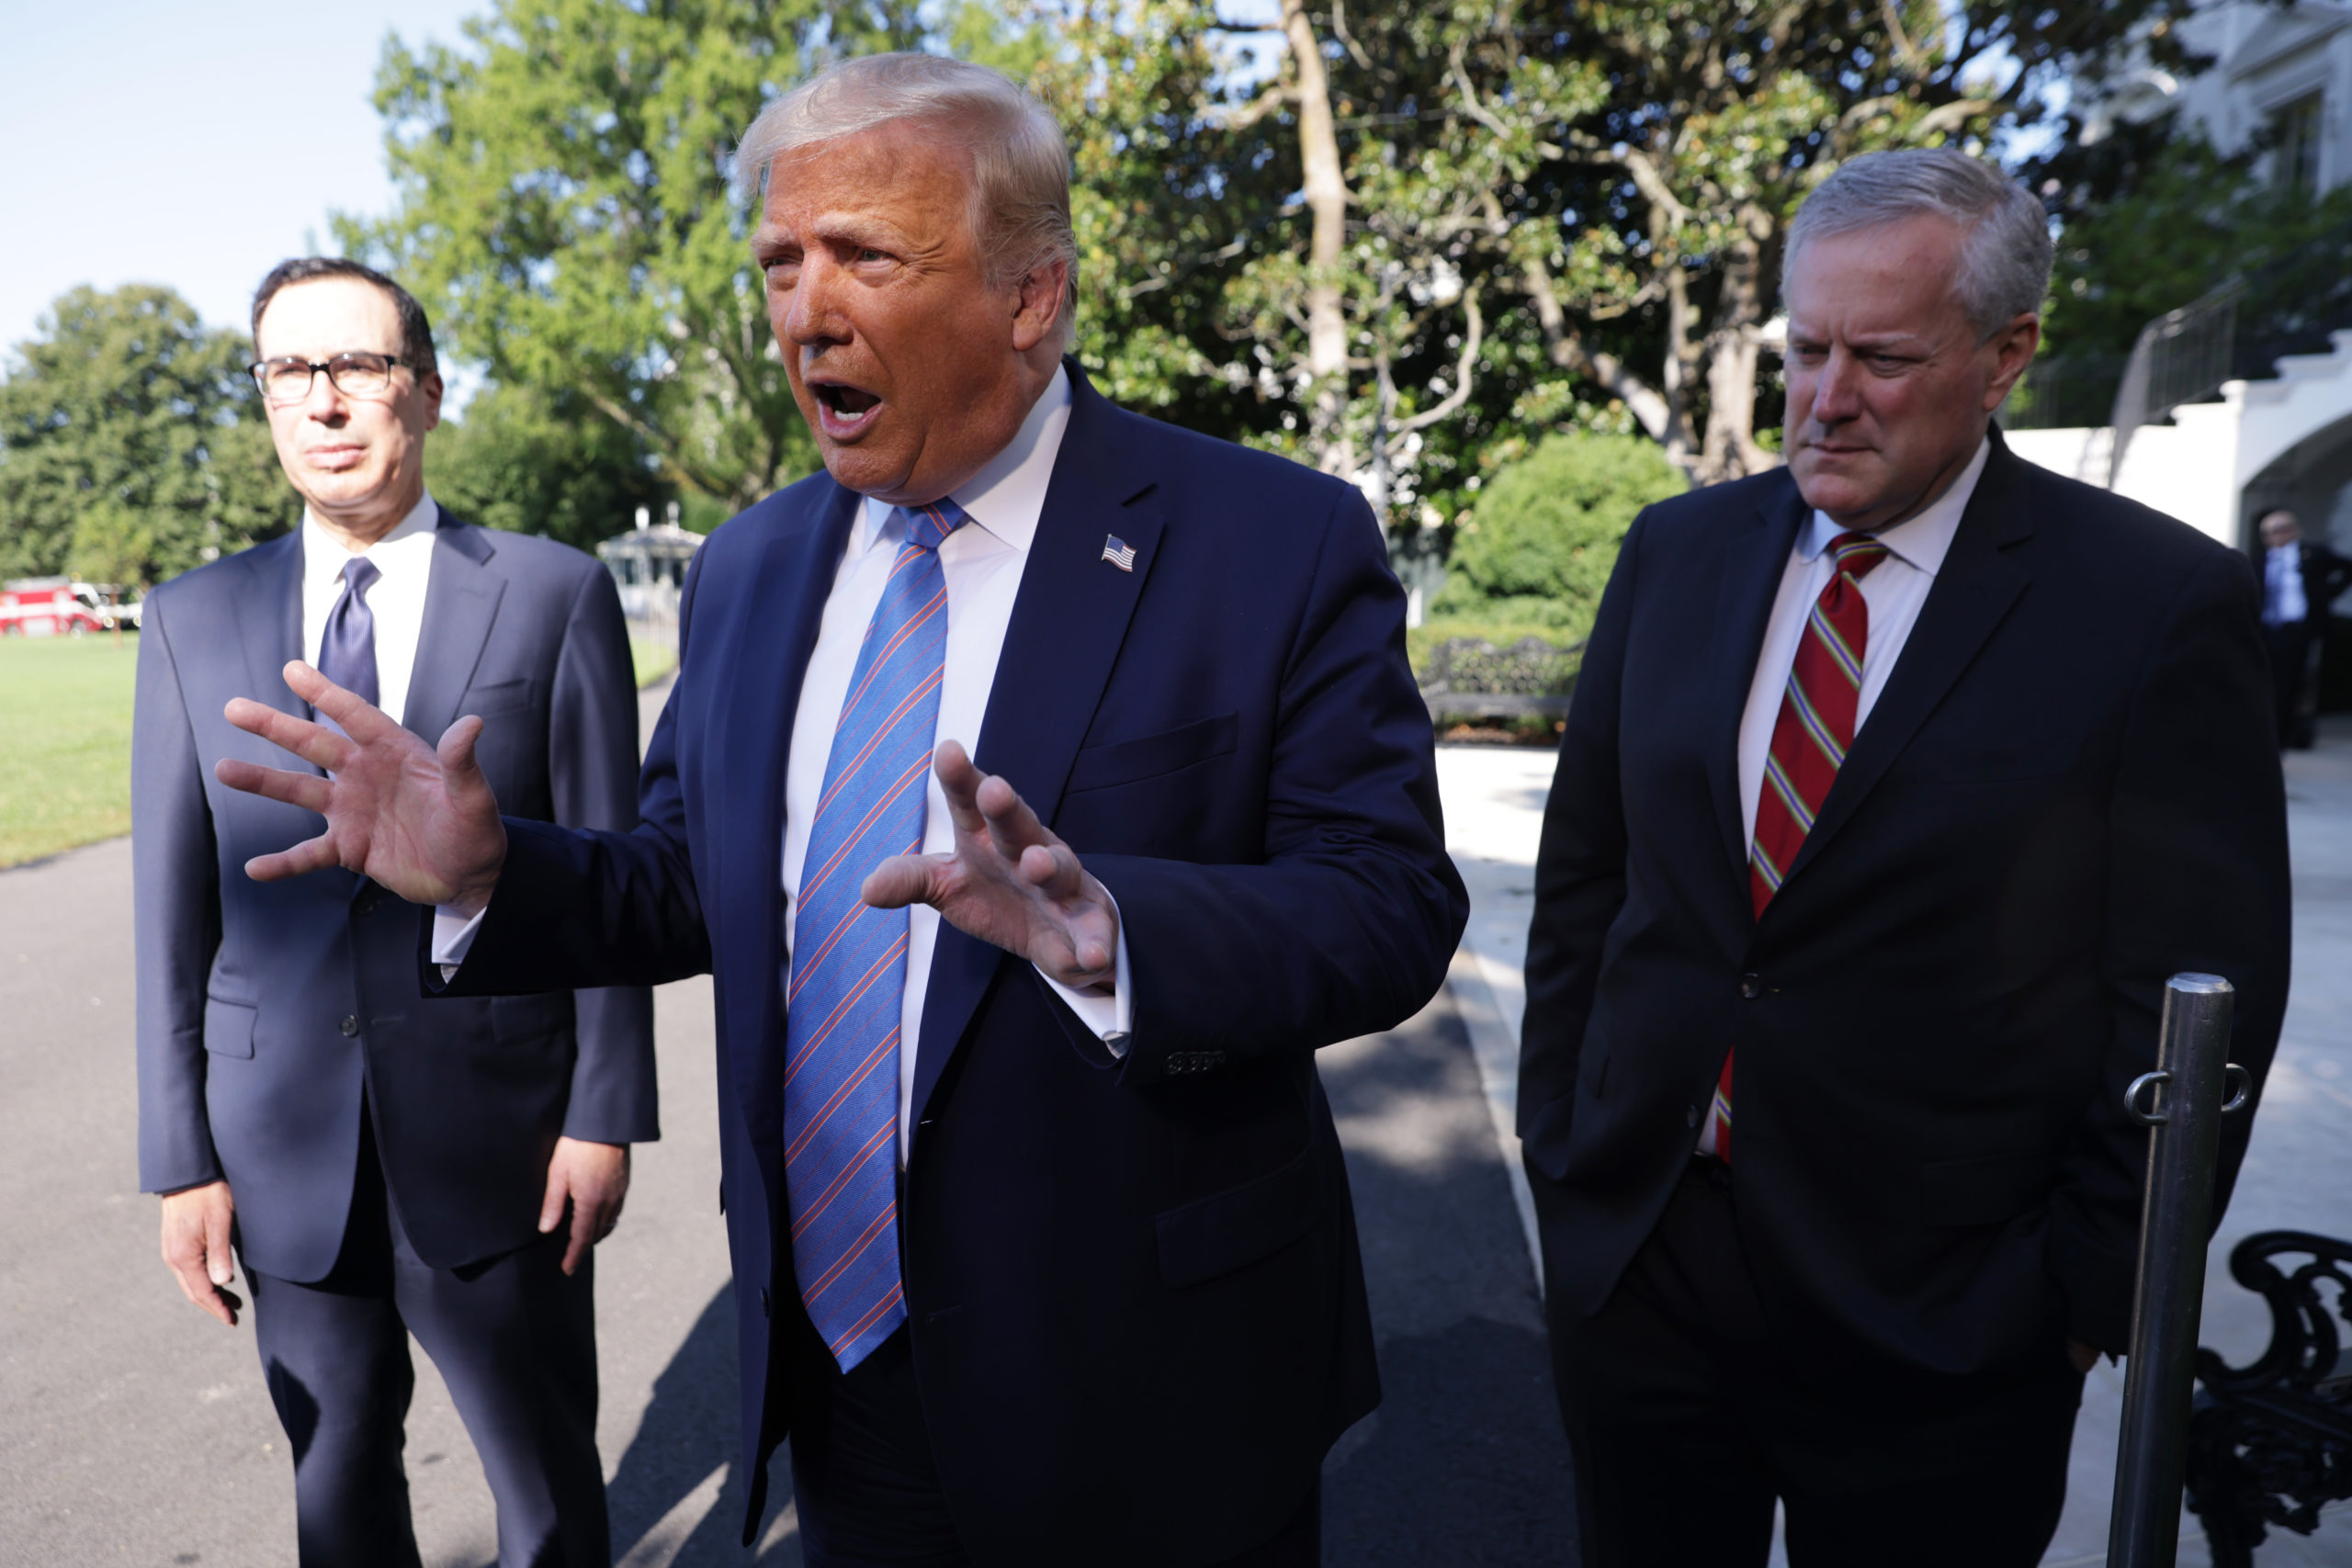 WASHINGTON, DC - JULY 29: U.S. President Donald Trump speaks as Secretary of Treasury Steven Mnuchin (L) and White House Chief of Staff Mark Meadows (R) listen prior to Trump's Marine One departure from the South Lawn of the White House July 29, 2020 in Washington, DC. President Trump is traveling to visit the Double Eagle Energy oil rig in Midland, Texas, and will attend a fundraising luncheon for the Republican Party and his reelection campaign. (Photo by Alex Wong/Getty Images)